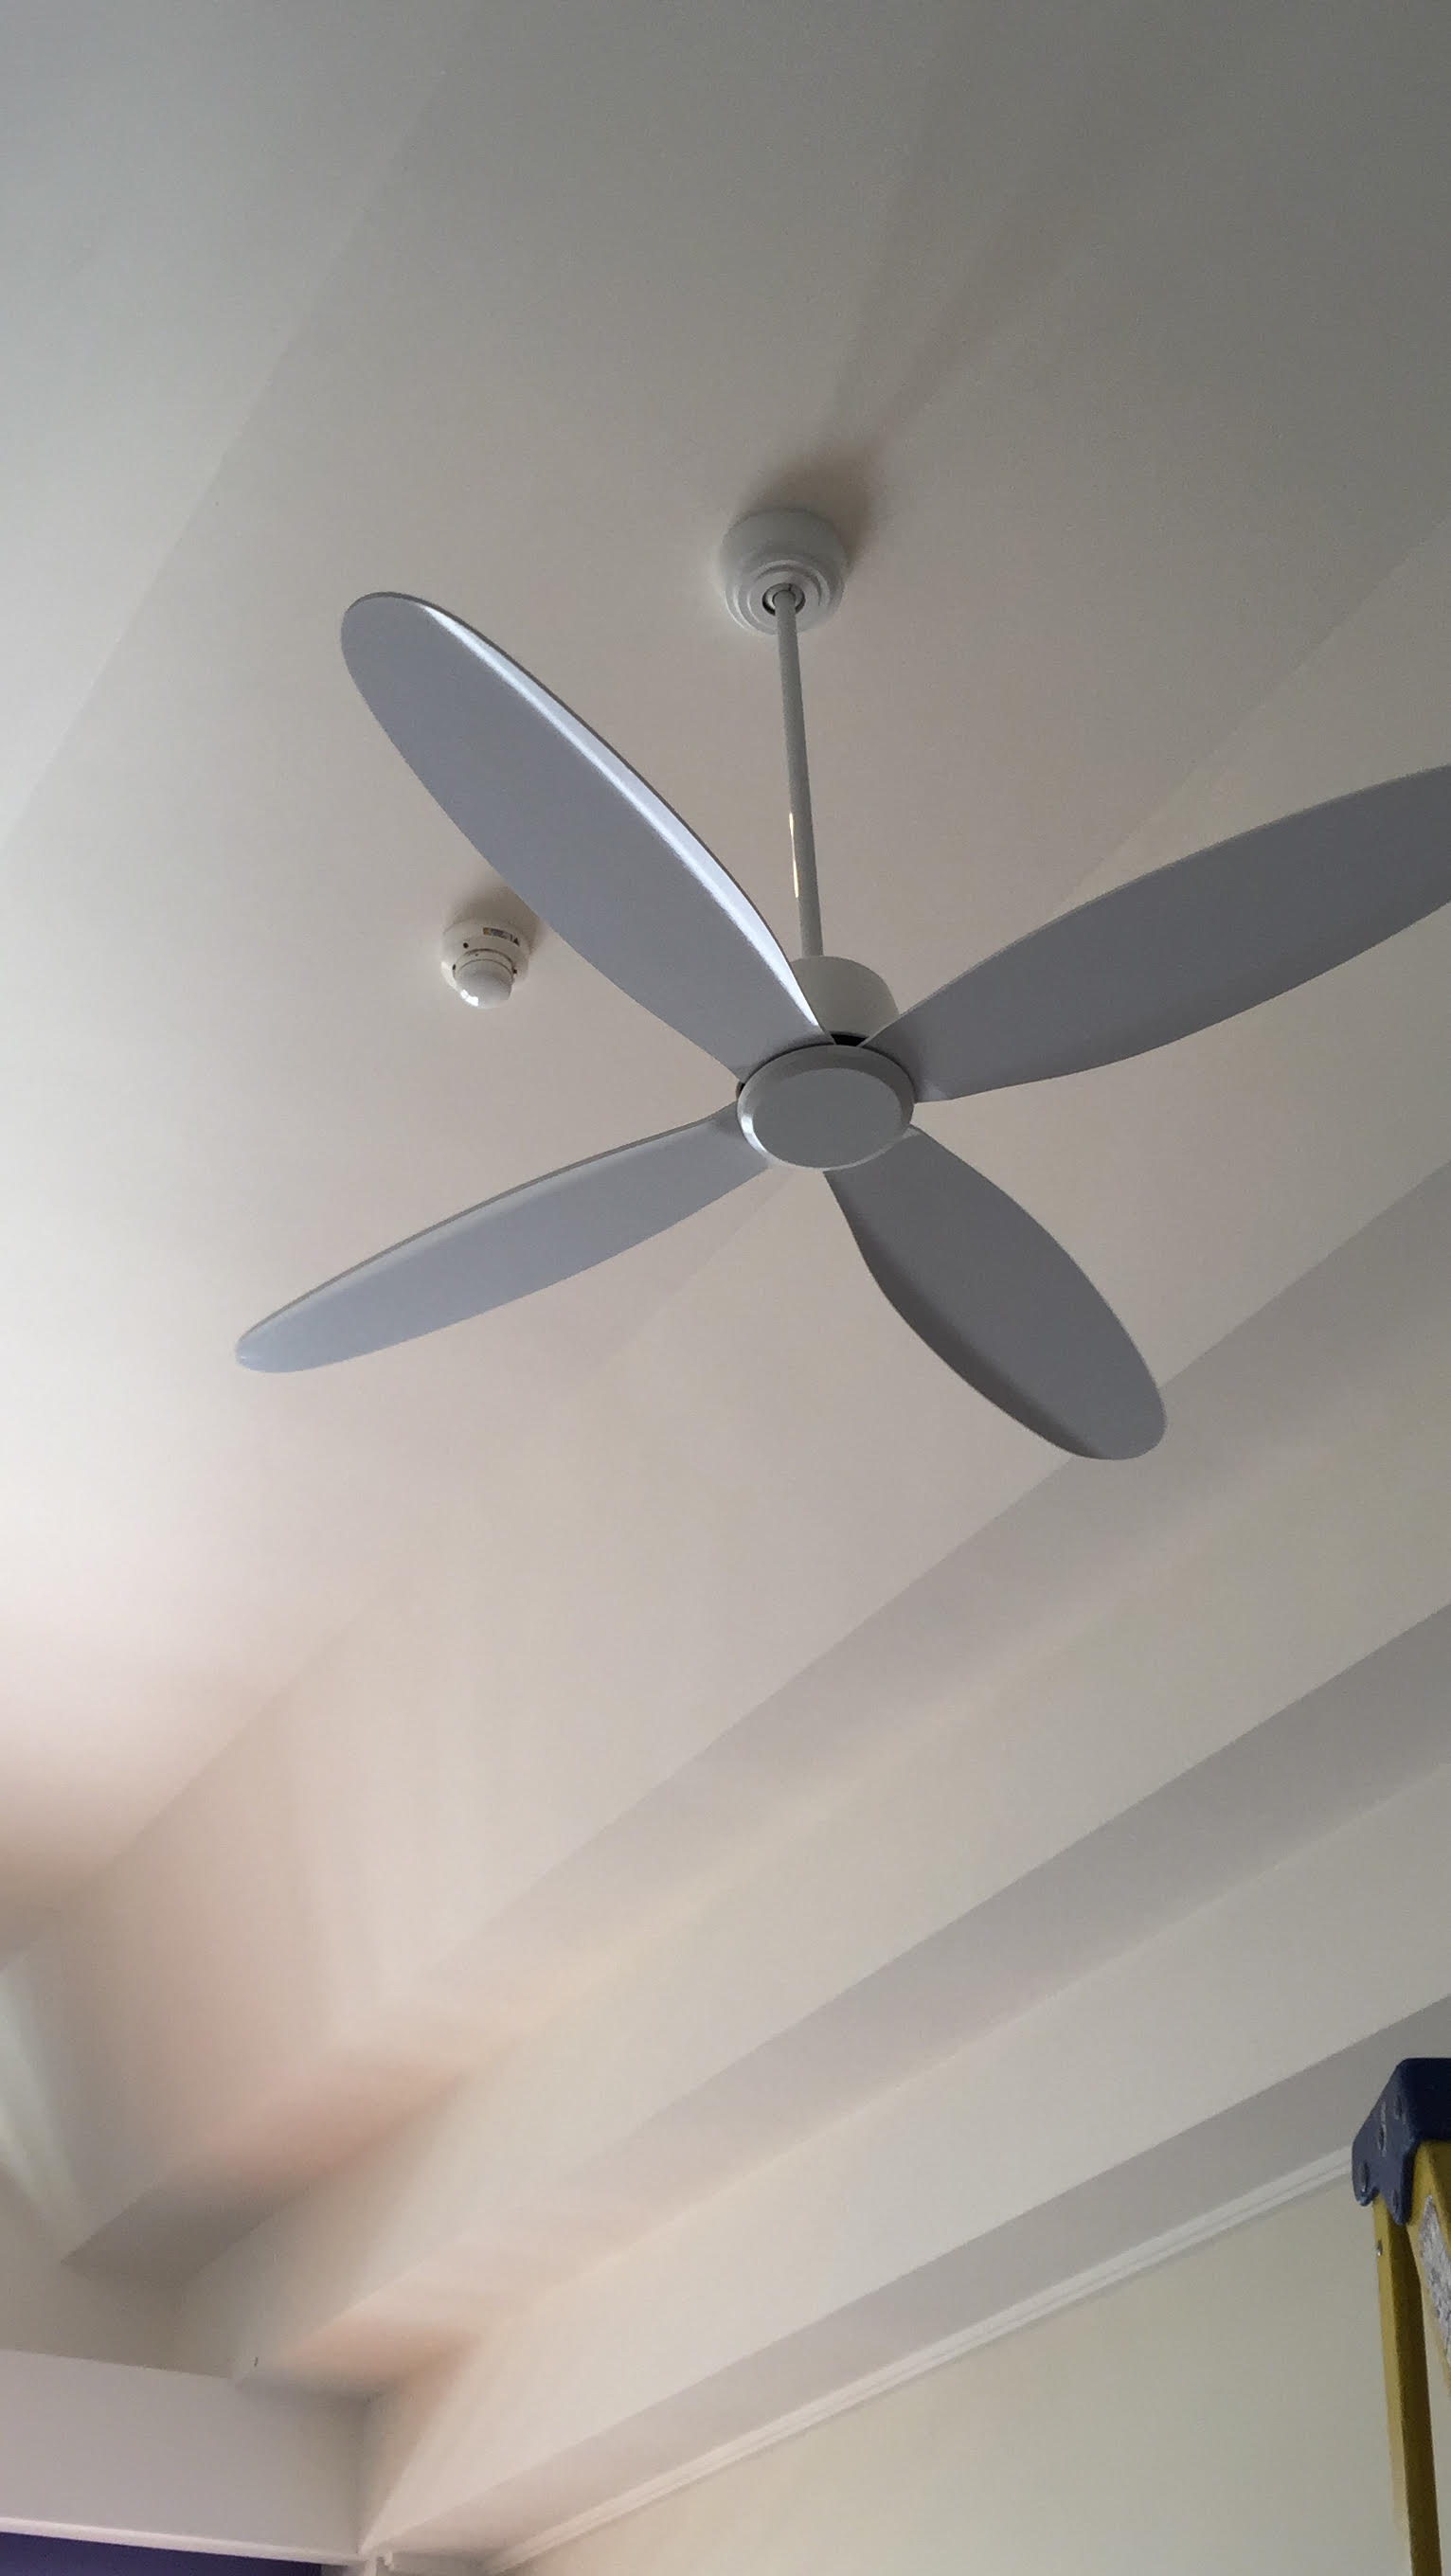 - Easy to maintainYou hardly require bearing any huge maintenance cost in ceiling fans. You can wipe out the loose dust on the fans by using a piece of dry cloth.It is not always easy to find a quality ceiling fan installer, and there is no doubt about the fact that the major amount of problems with ceiling fans start because of poor quality installations. The best part of choosing us over others is our team comprises of the most experienced installers in the market who will make sure you will not face any problem in the post-installation process.We can advise you on the right ceiling fan for your rooms based on your budget, room size and ceiling heights while we excel in ceiling fan installations in Gold Coast. Our team has skilled electricians who will incorporate remote access facility to your ceiling fans so that you can operate it without getting up from the bed. The remote access further lets you control the speed of the fan with the press of a button.Choosing the correct fan sizeRoom size of 4x5 meters or smaller requires a blade length of 122cm.Room size of 6x6 meters or larger requires a blade length of 132cm.Energy usageCeilings fans are extremely efficient to function, and these typically use about the same energy as a 60w light bulb, they cost around 3 cents per hour to run, and they are a fraction of the cost as that of an air conditioning system.